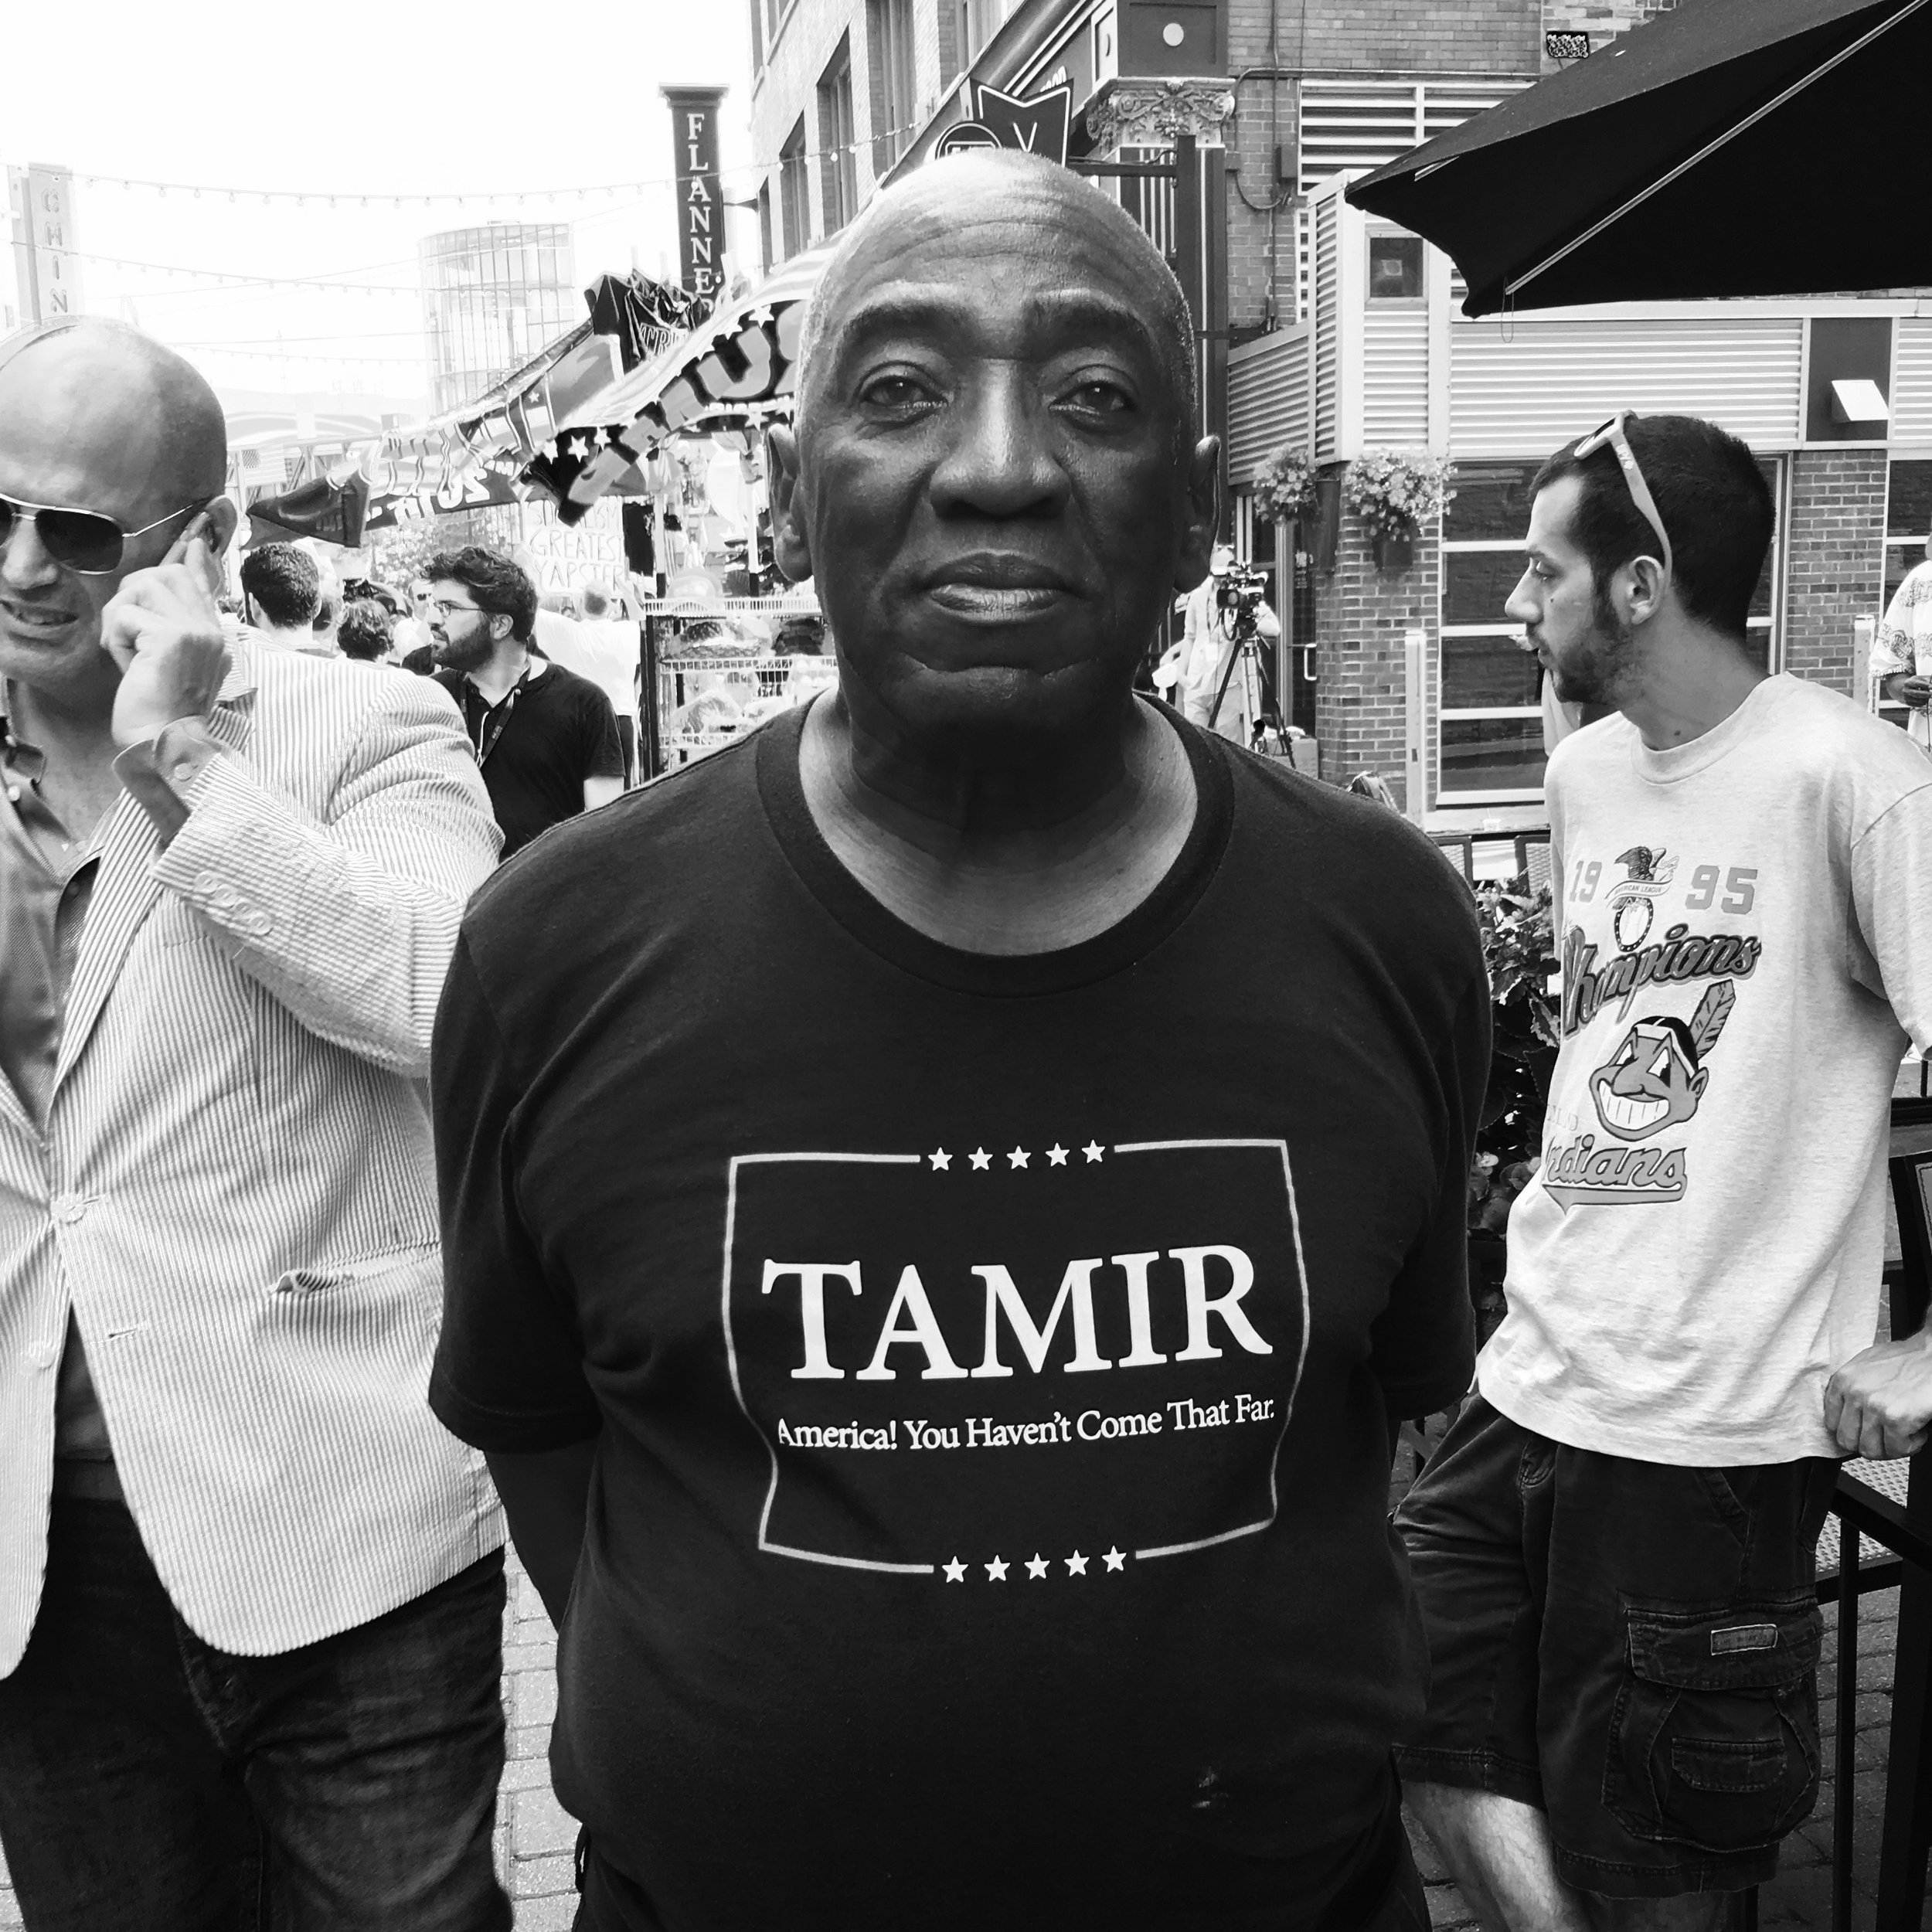 """ Tamir  - Cleveland, 2016"" Photo © by Tony Puryear, 2016 all rights reserved. Photo of Black man wearing a shirt commemorating Tamir Rice, the young Black boy who was shot to death by police in Cleveland for playing with a toy gun in a park. At the Republican National Convention."